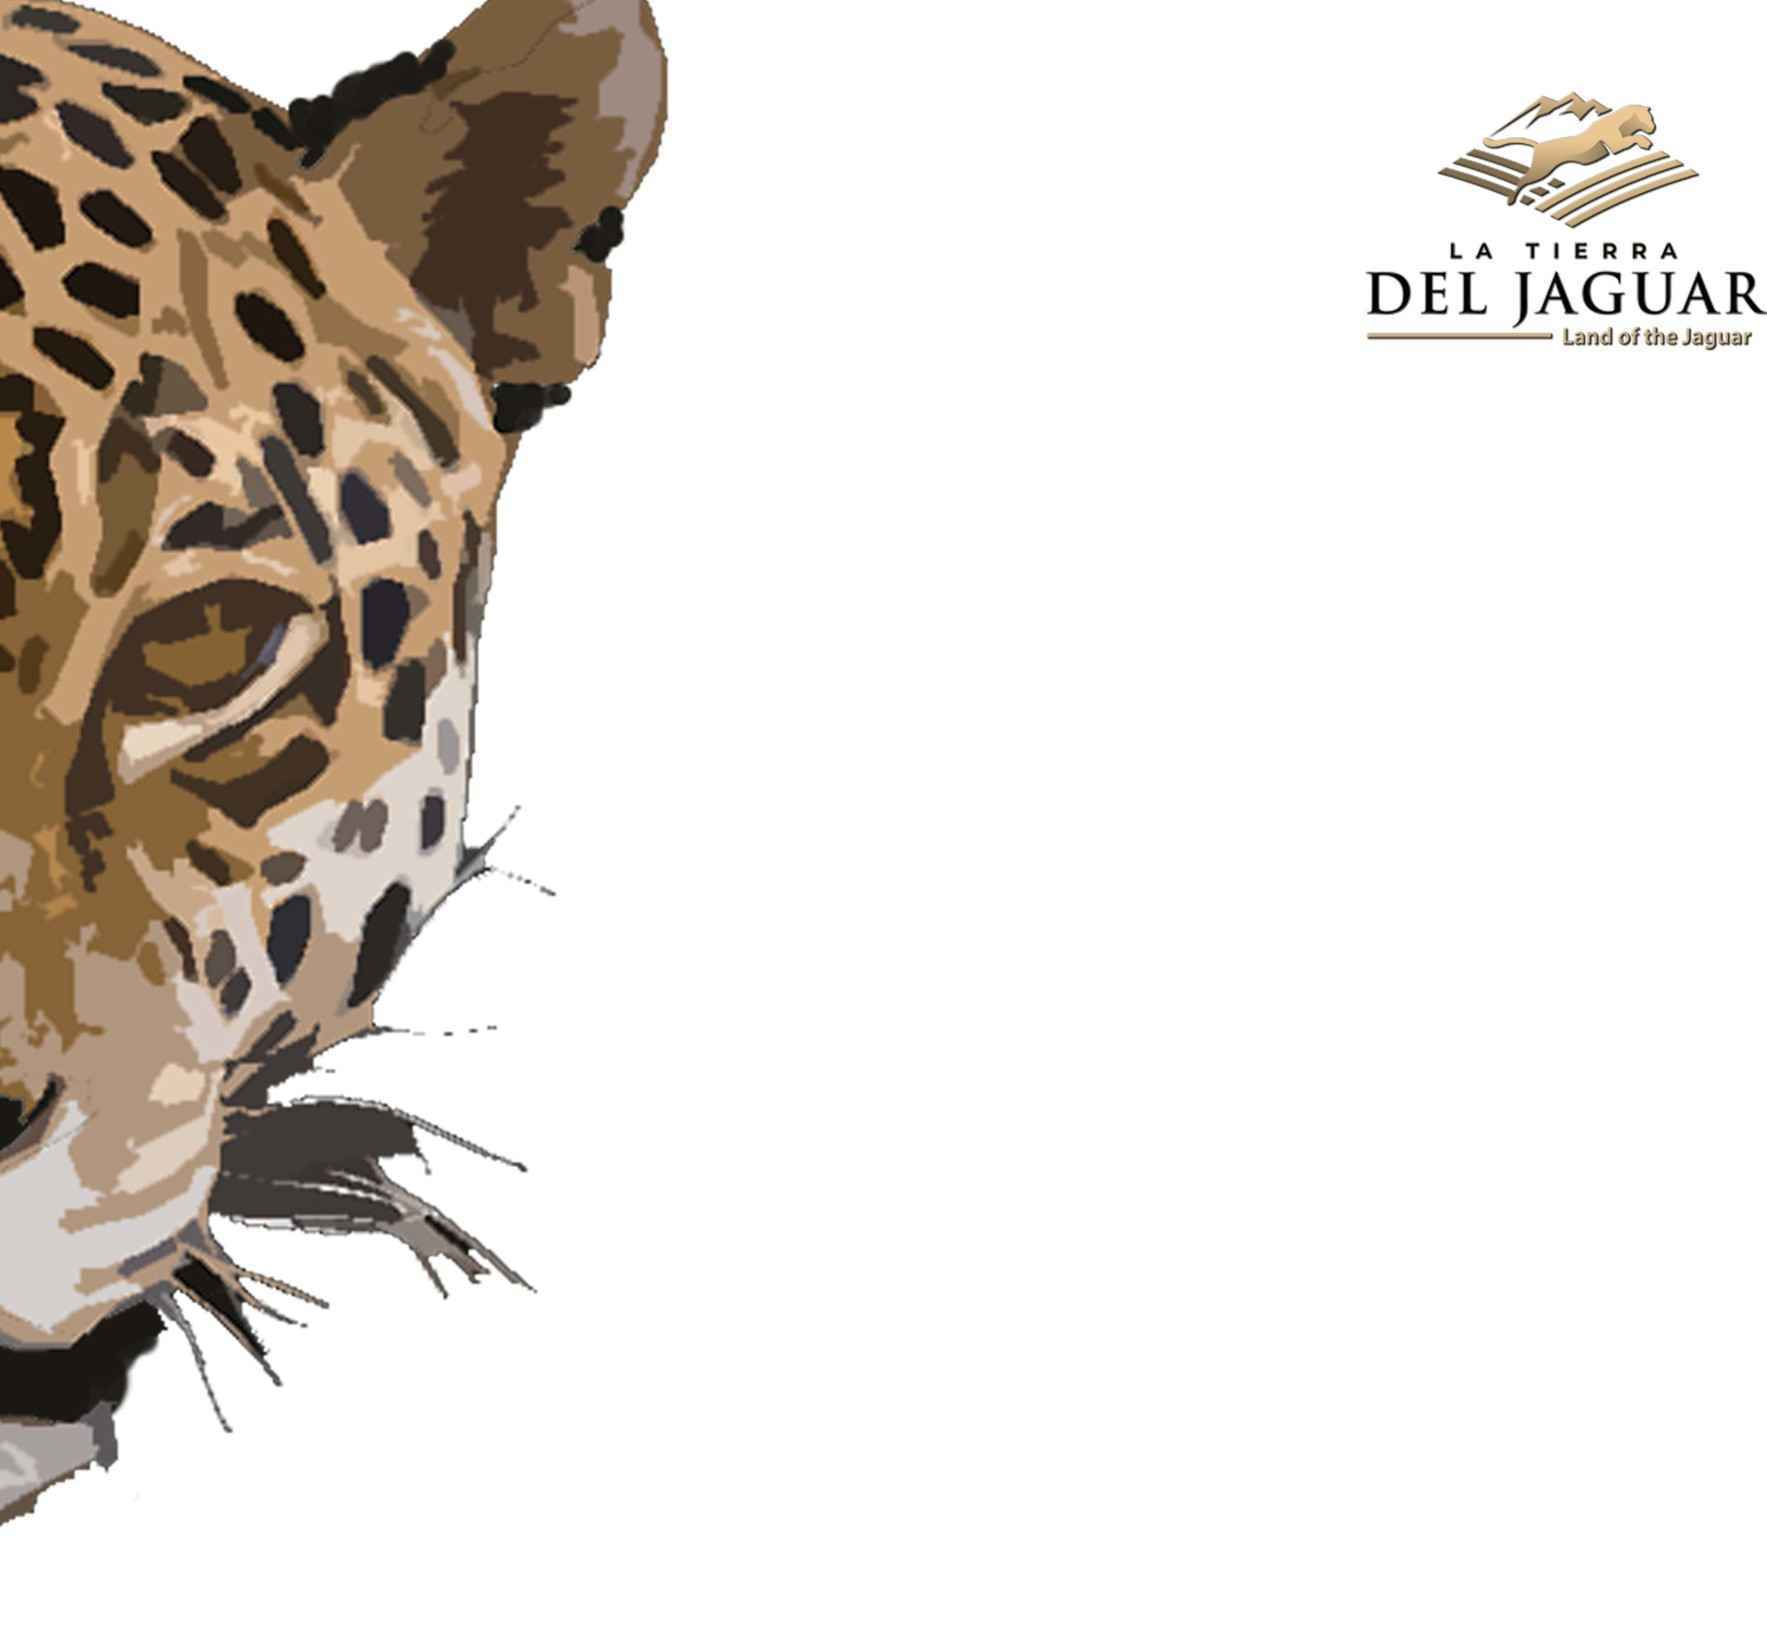 Your Gift will Save the Jaguar, Help the People and Heal the Land image